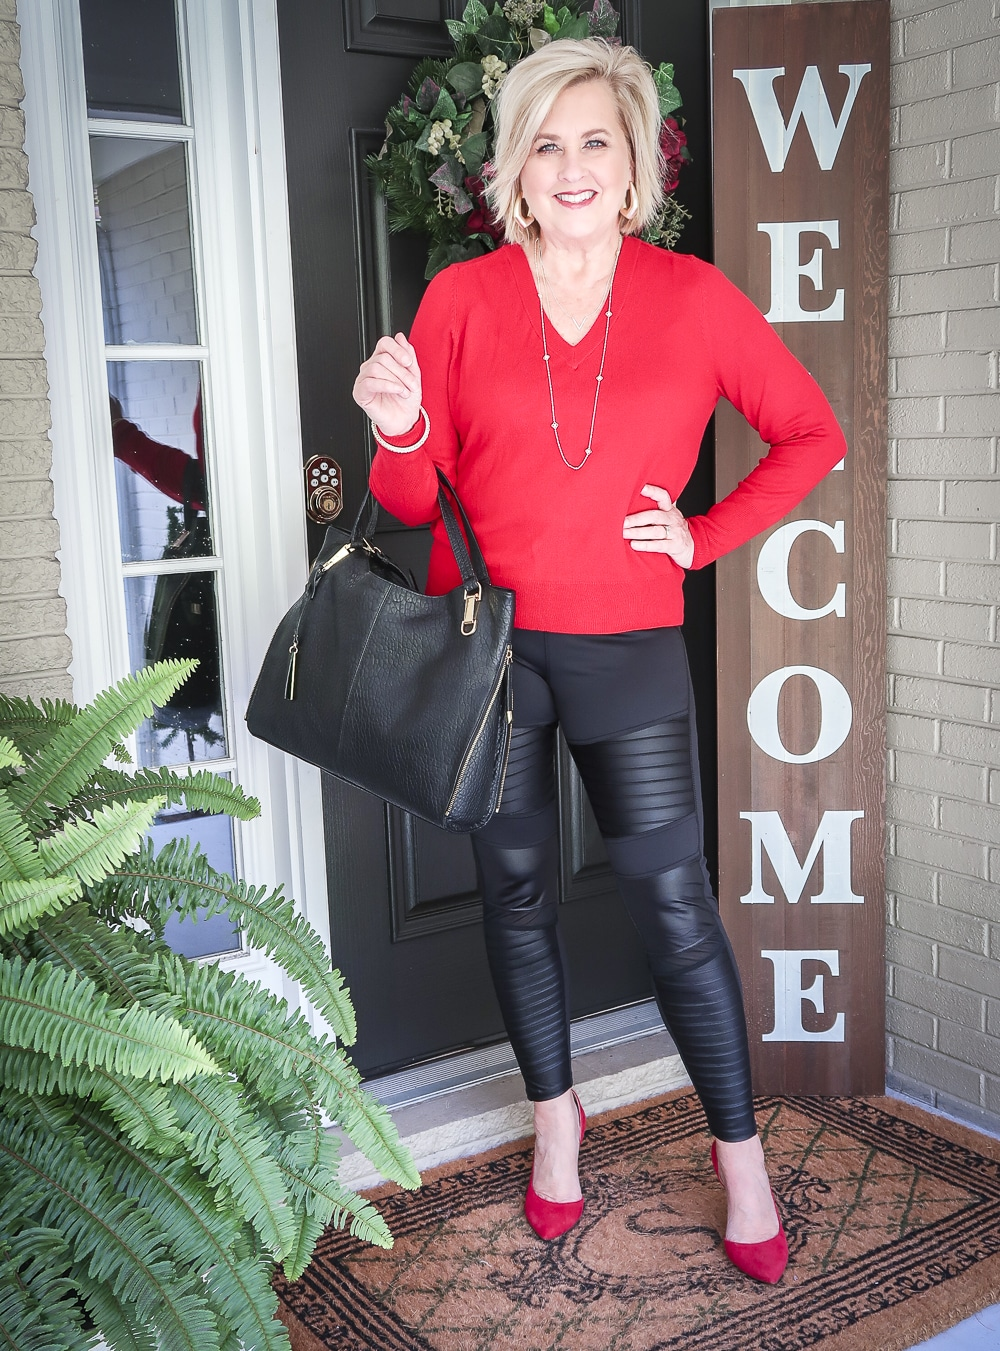 Fashion Blogger 50 Is Not Old is looking modern and edgy in this pair of black faux leather moto leggings, red sweater, and red pumps